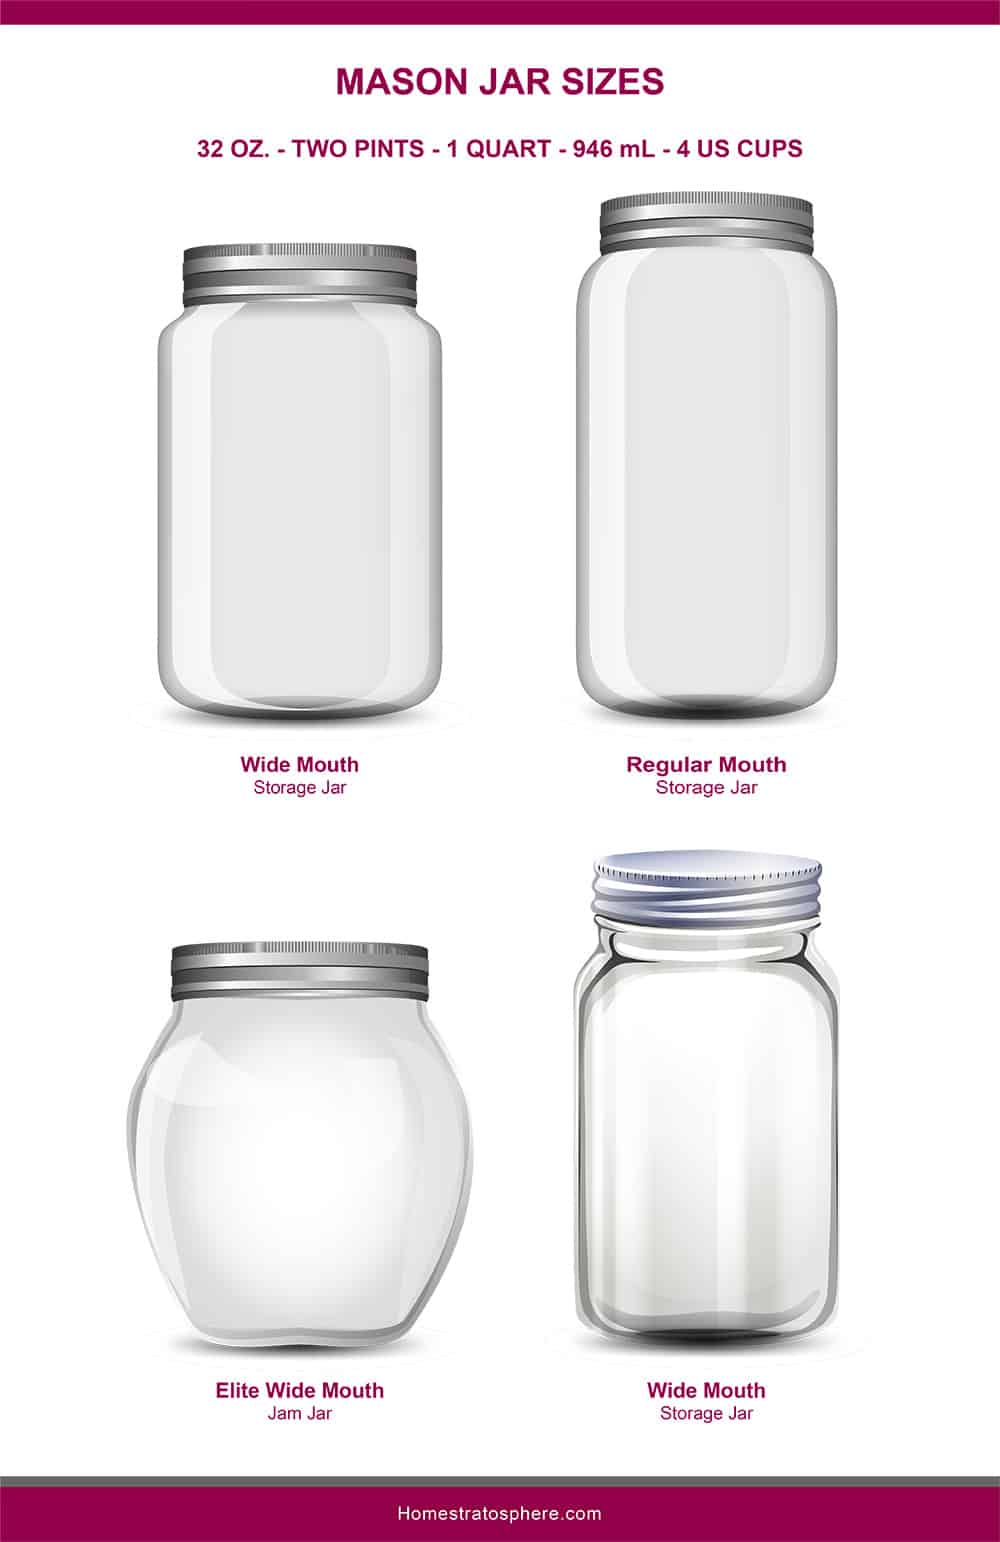 This is an illustrated diagram depicting the different mason jar sizes showcasing the regular mouth, wide mouth and elite wide mouth jars in 32 ounces.